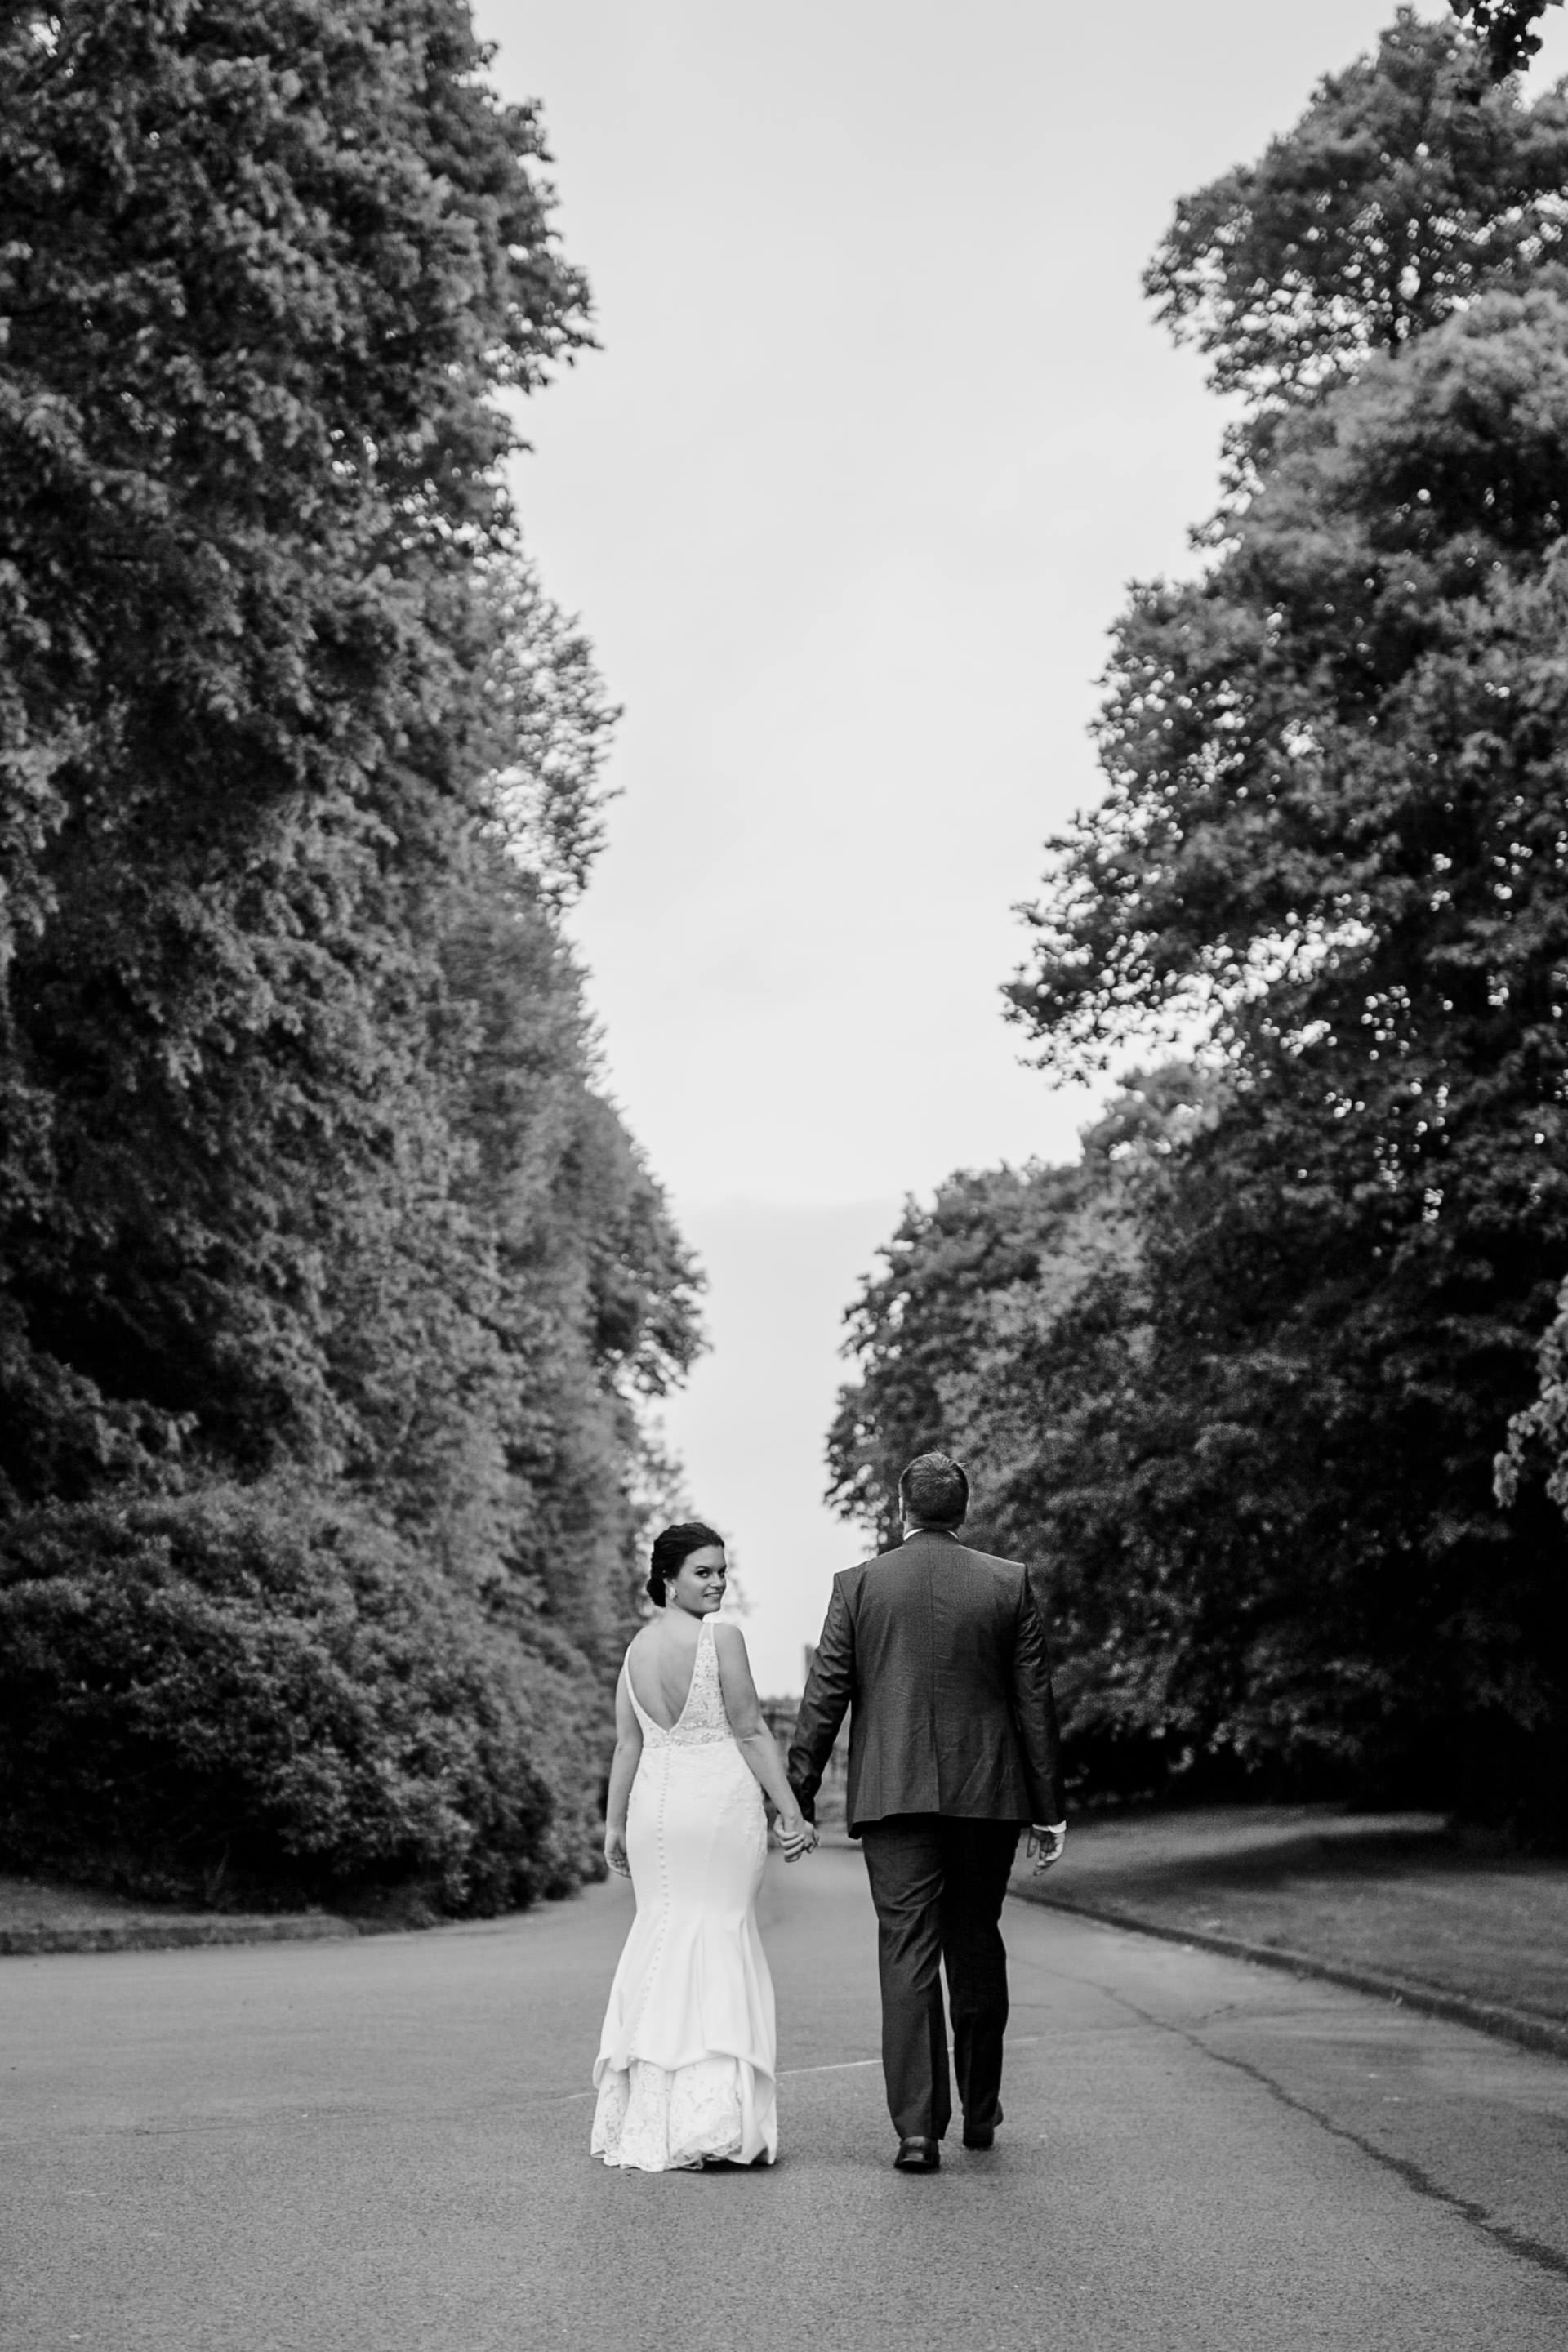 c+j_louth_wedding_photographer_bellingham_castle_livia_figueiredo_12.jpg